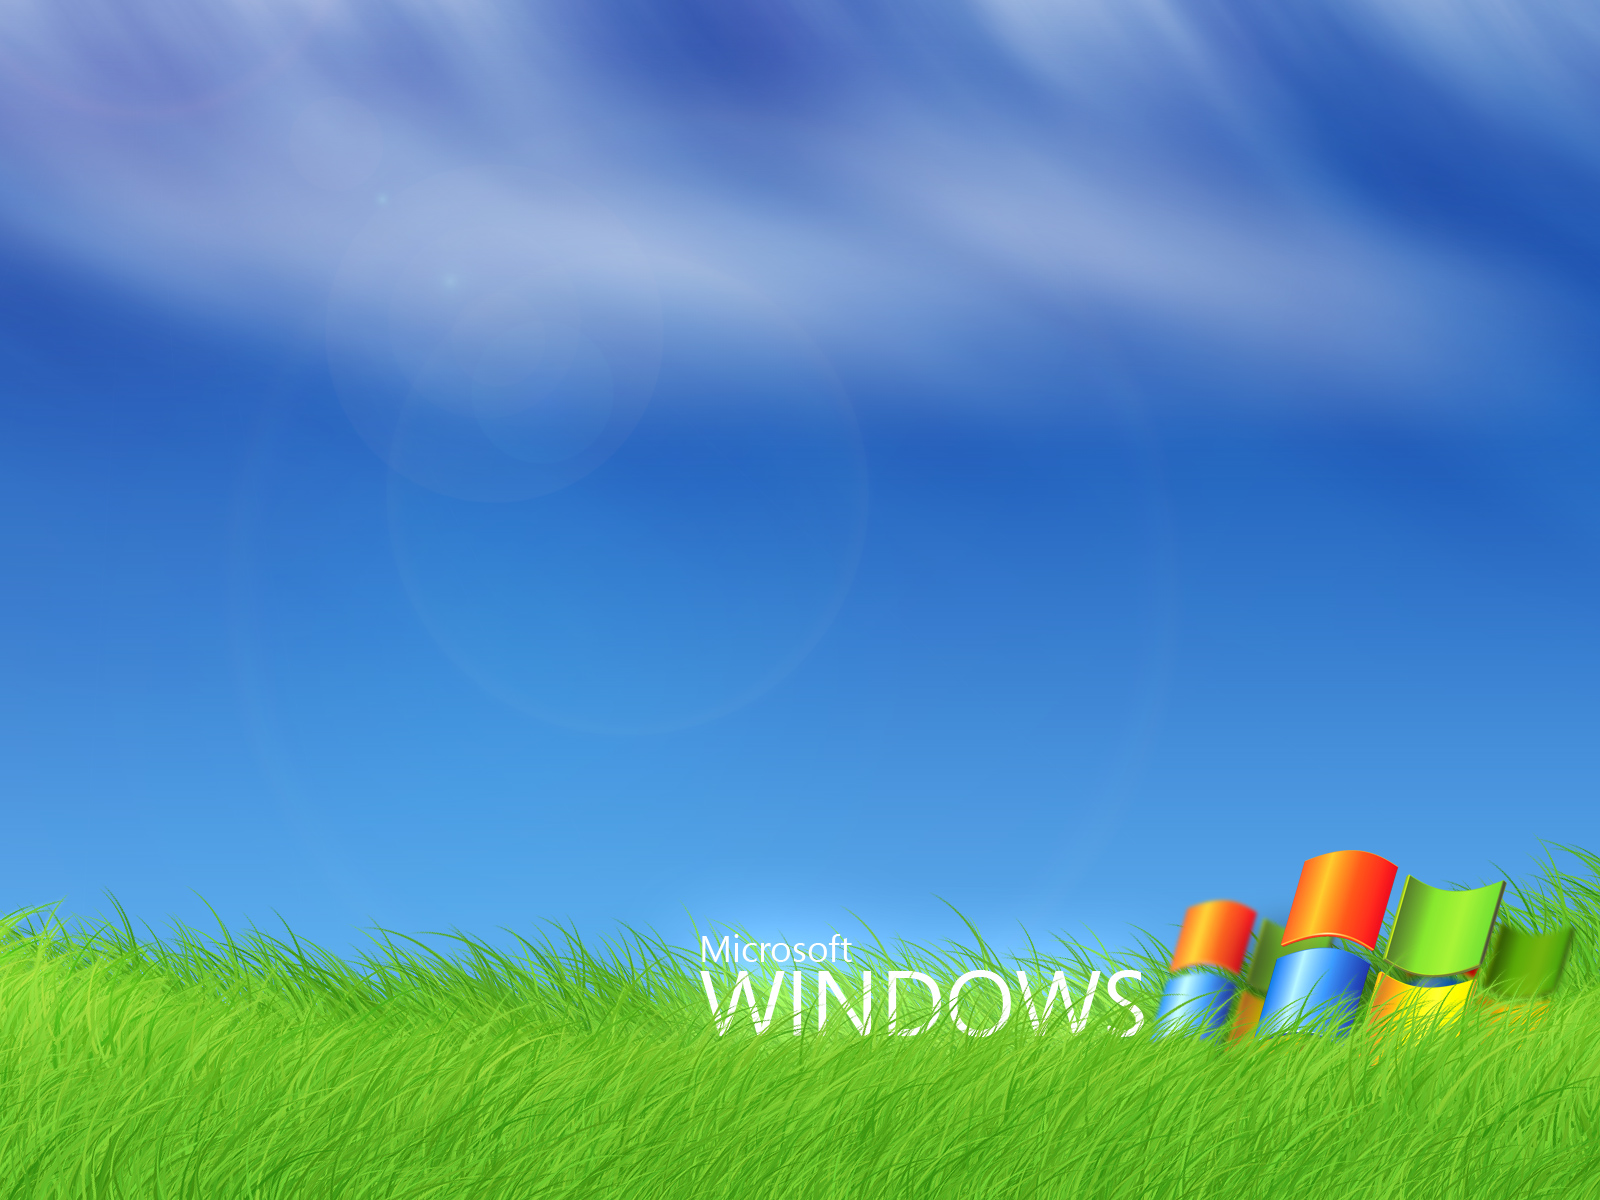 ... : Cool Wallpapers , Windows 7 , Windows Vista , Windows Wallpapers